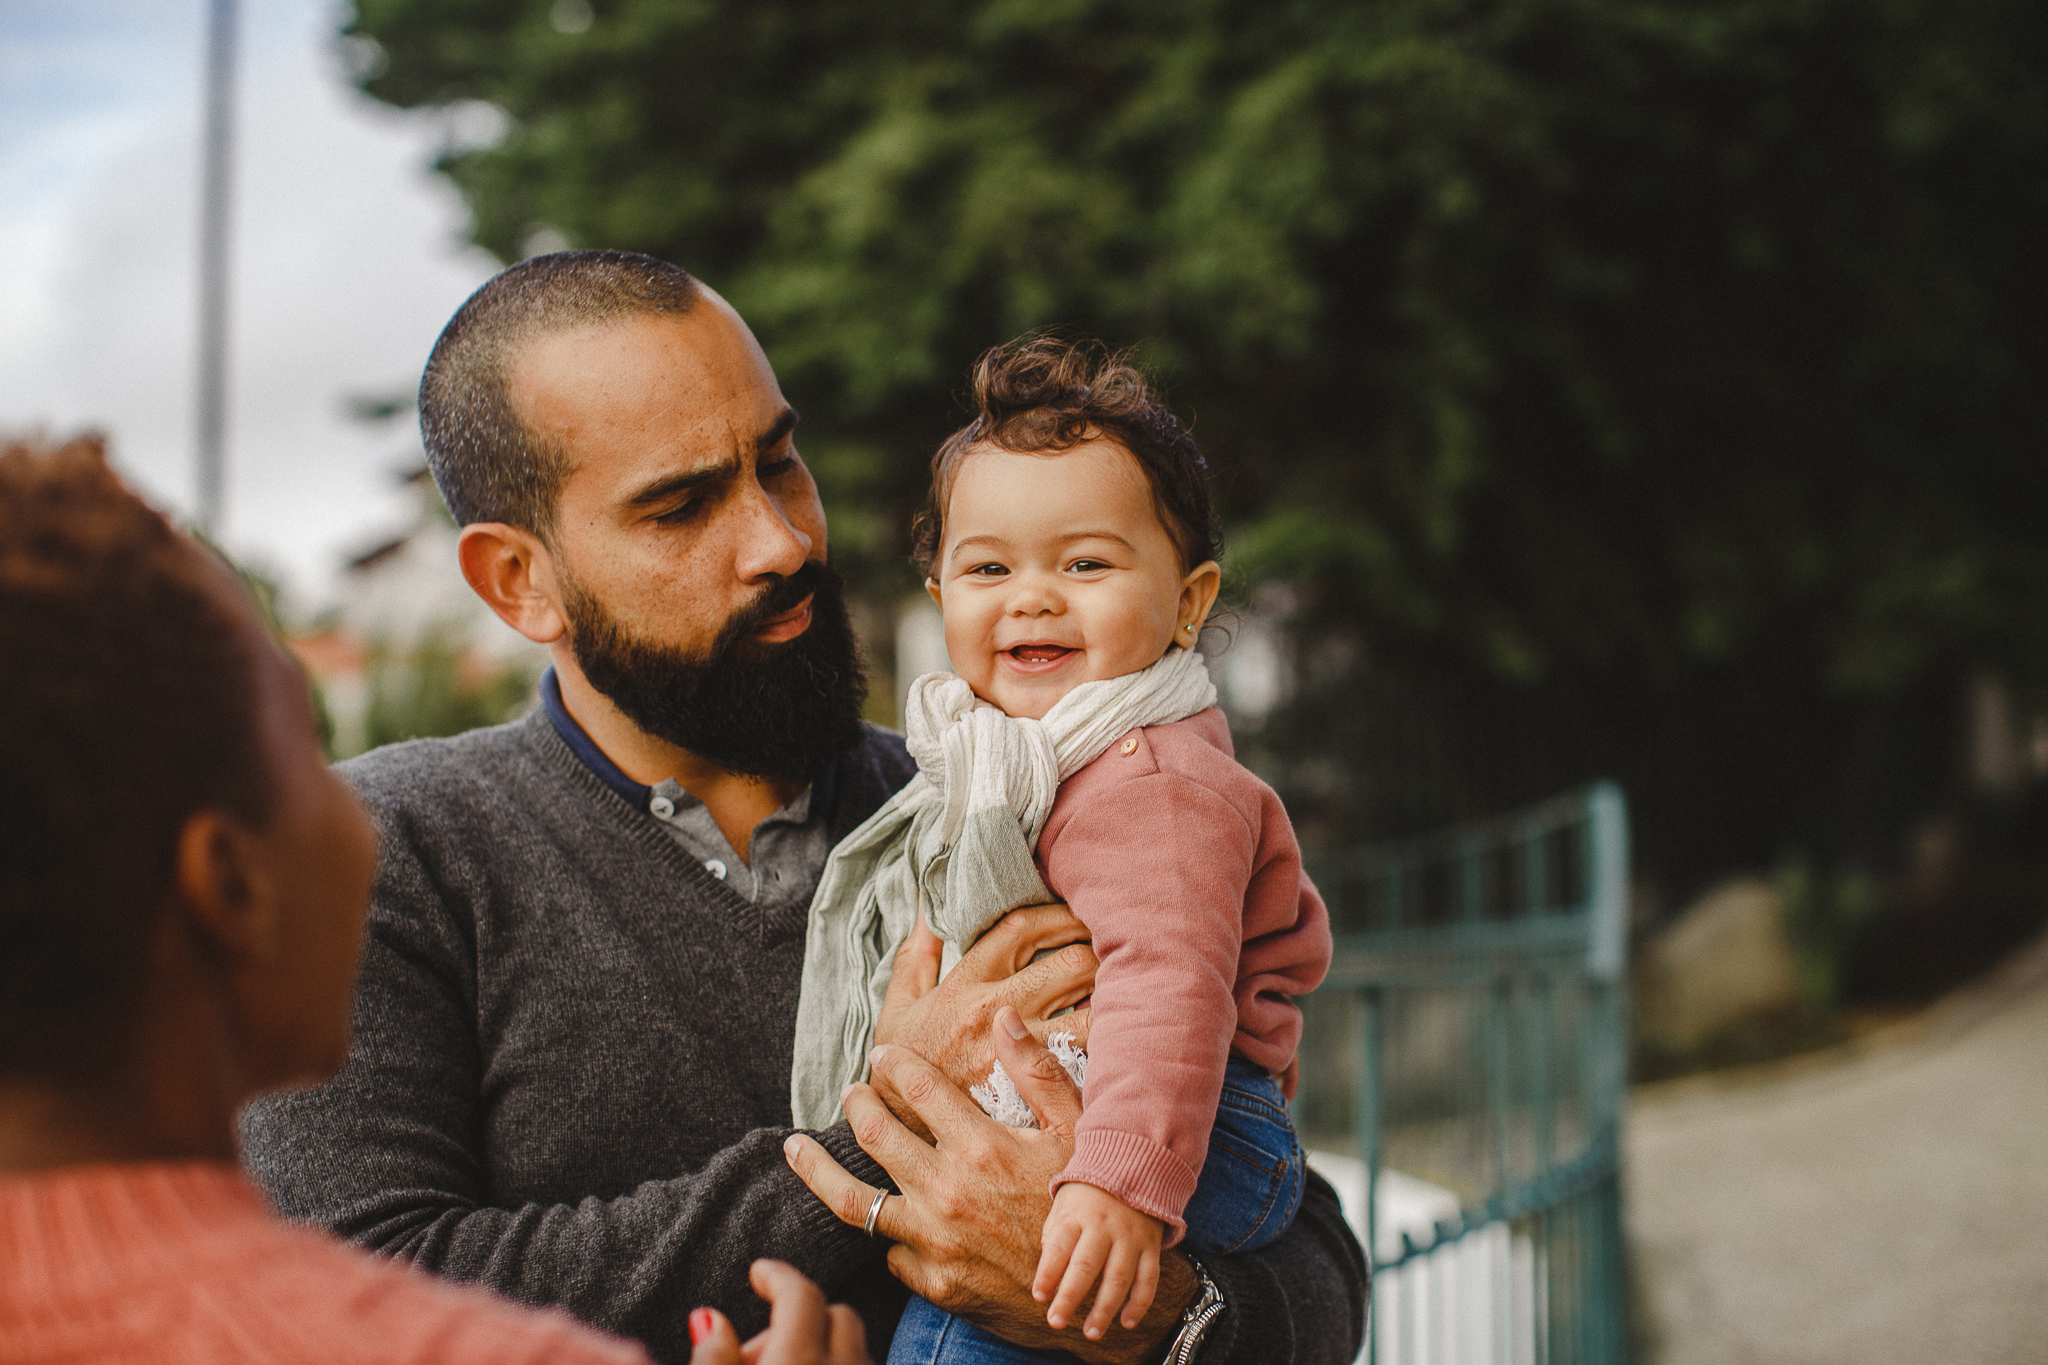 Baby smiling during a family photoshoot in Lisbon.